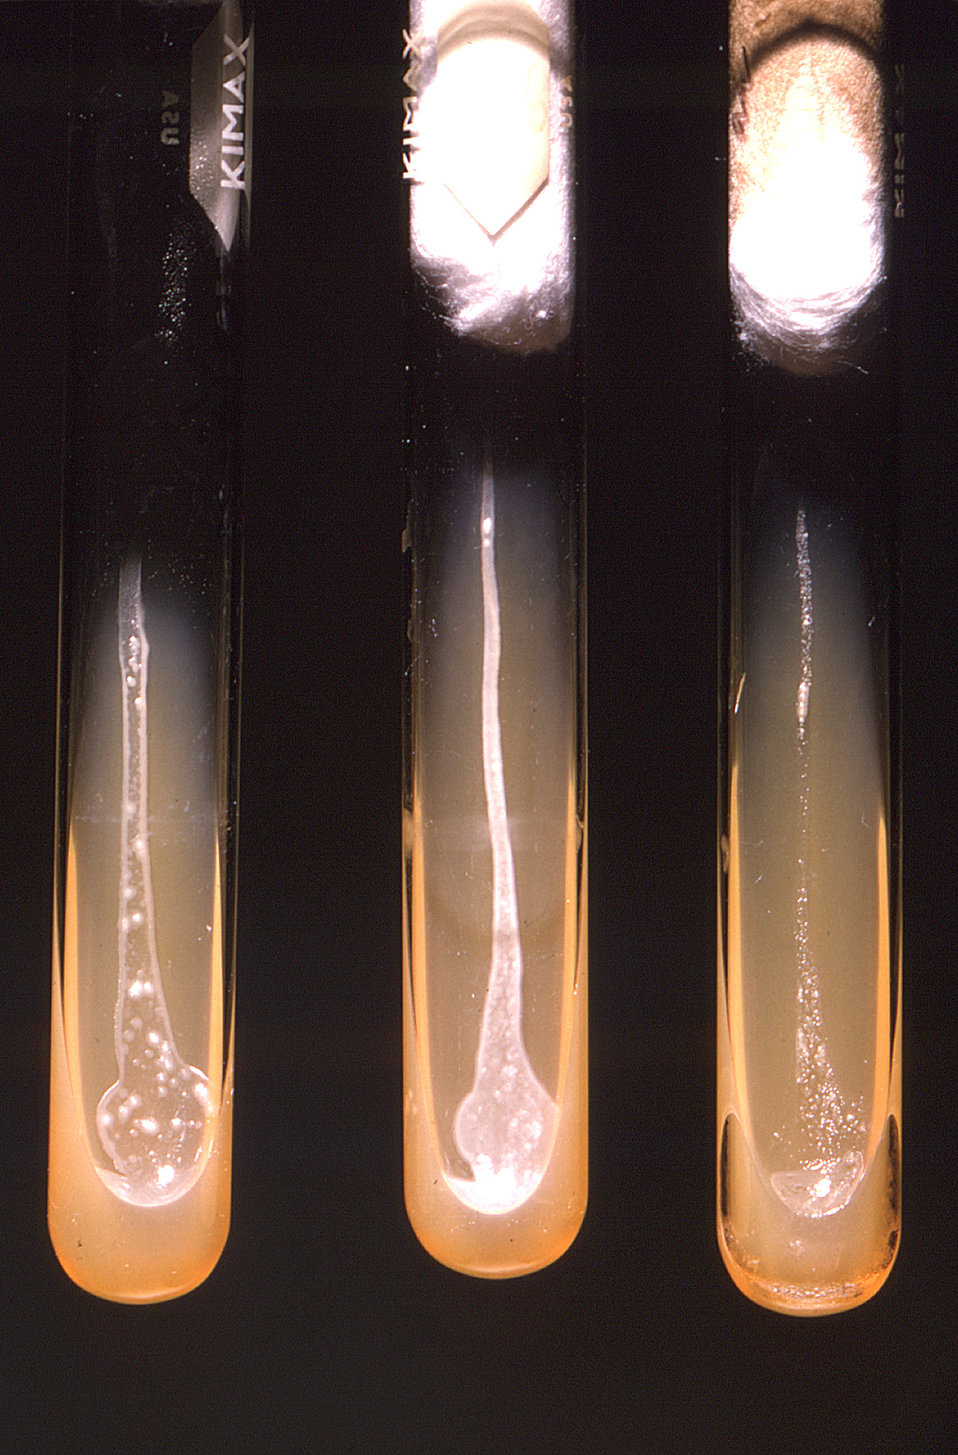 From left to right, these three test tubes represent three different growing environments within which Actinomyces viscosus bacteria were gr